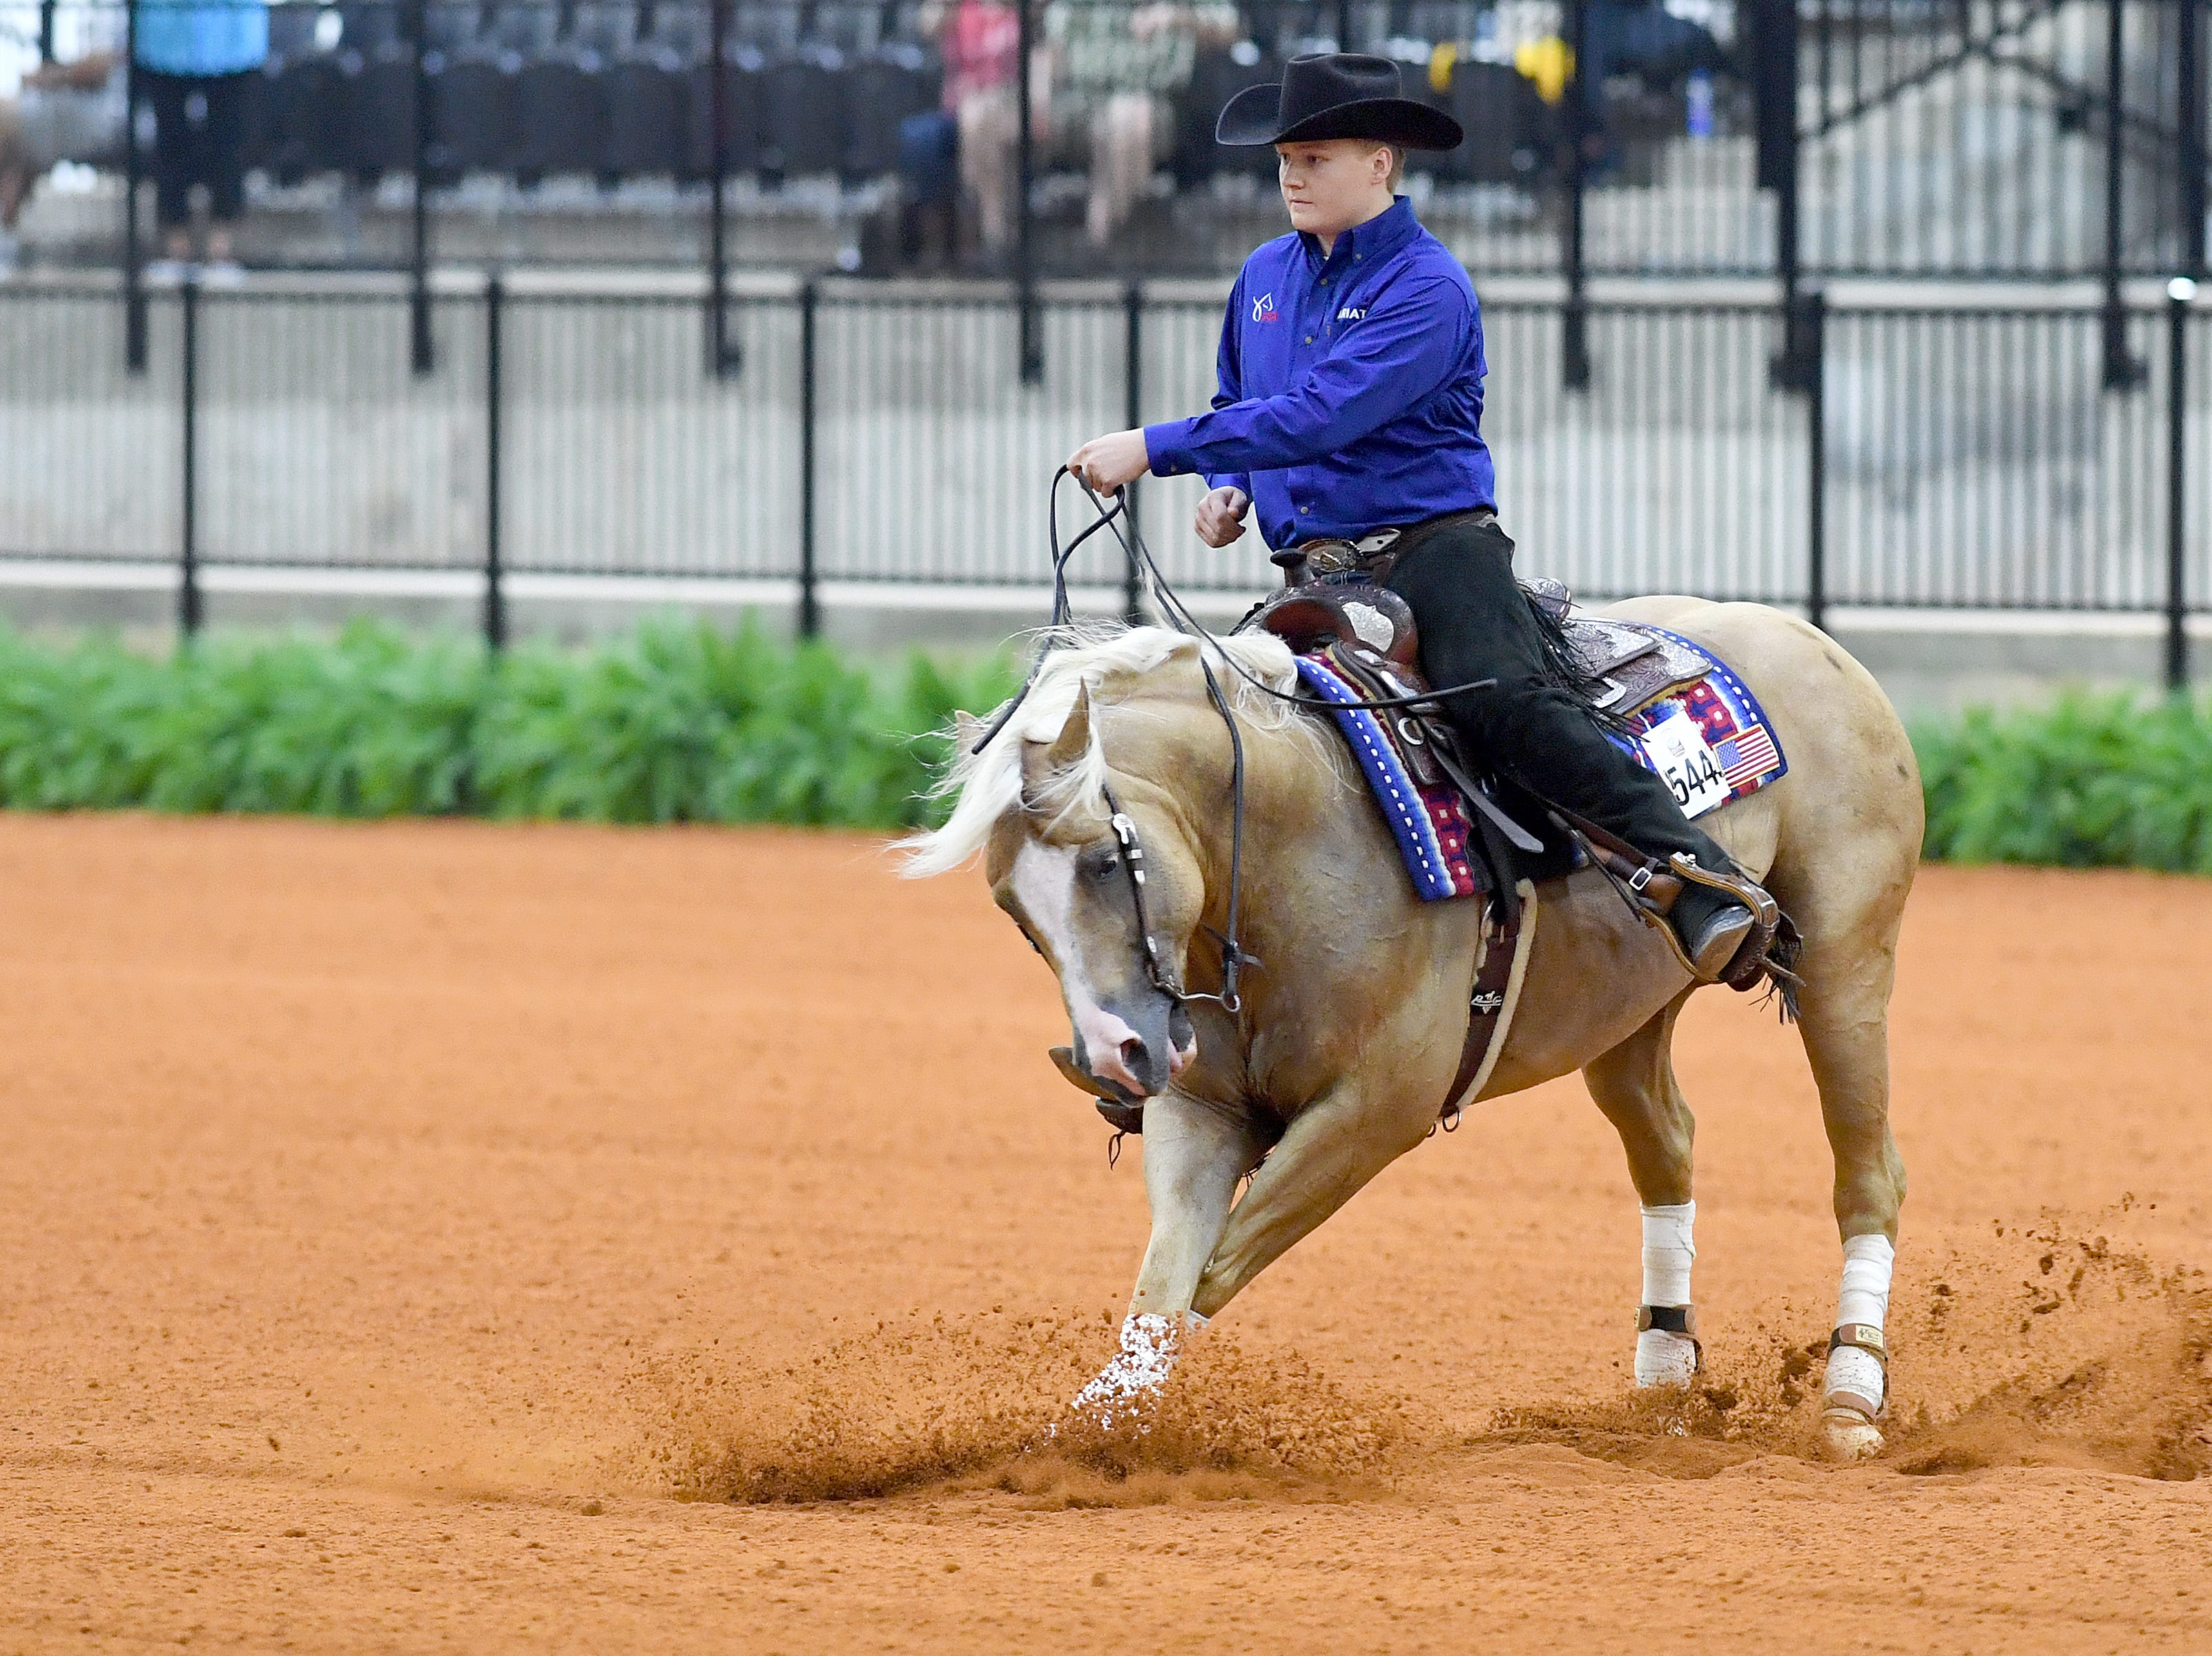 Cade Mccutcheon, with his horse, Custom Made Gun, competes in the reining competition during the FEI World Equestrian Games at the Tryon International Equestrian Center on Sept. 12, 2018. A score of 229 put him in the lead for the morning's competition lineup. He is the youngest United States athlete in the games at 18-years-old.